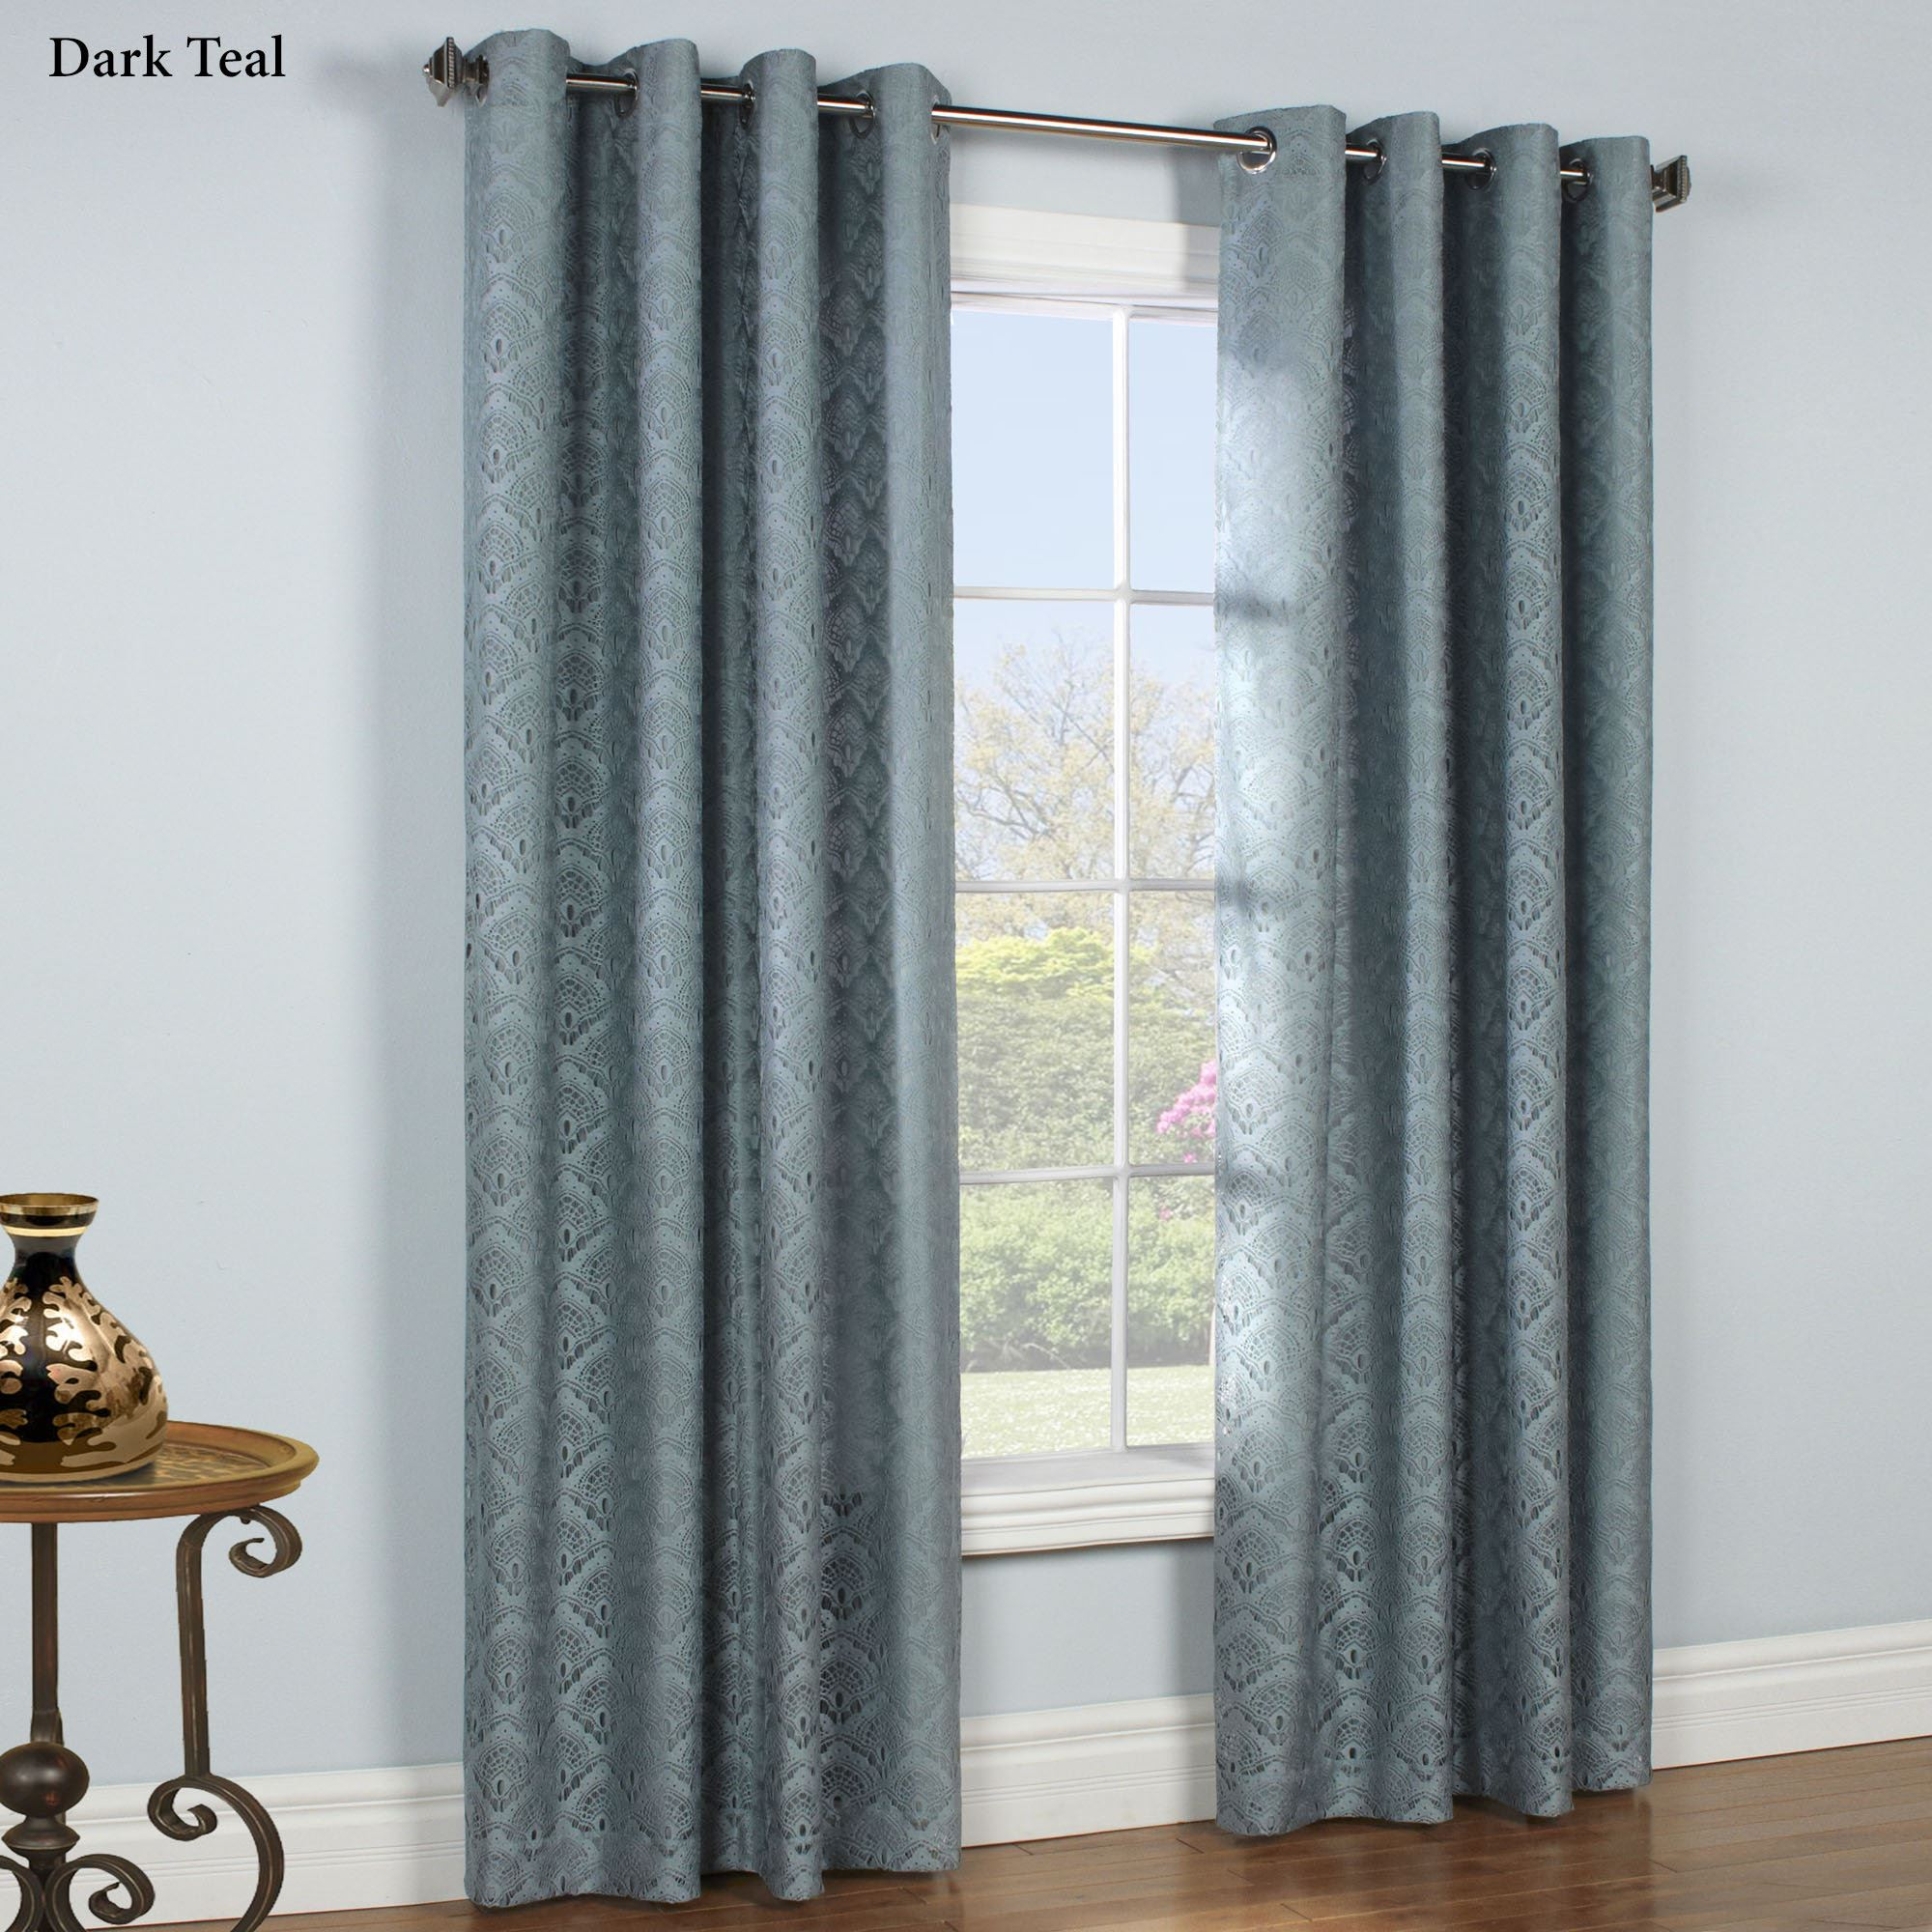 Anna ThermaLace(TM) Insulated Grommet Curtains